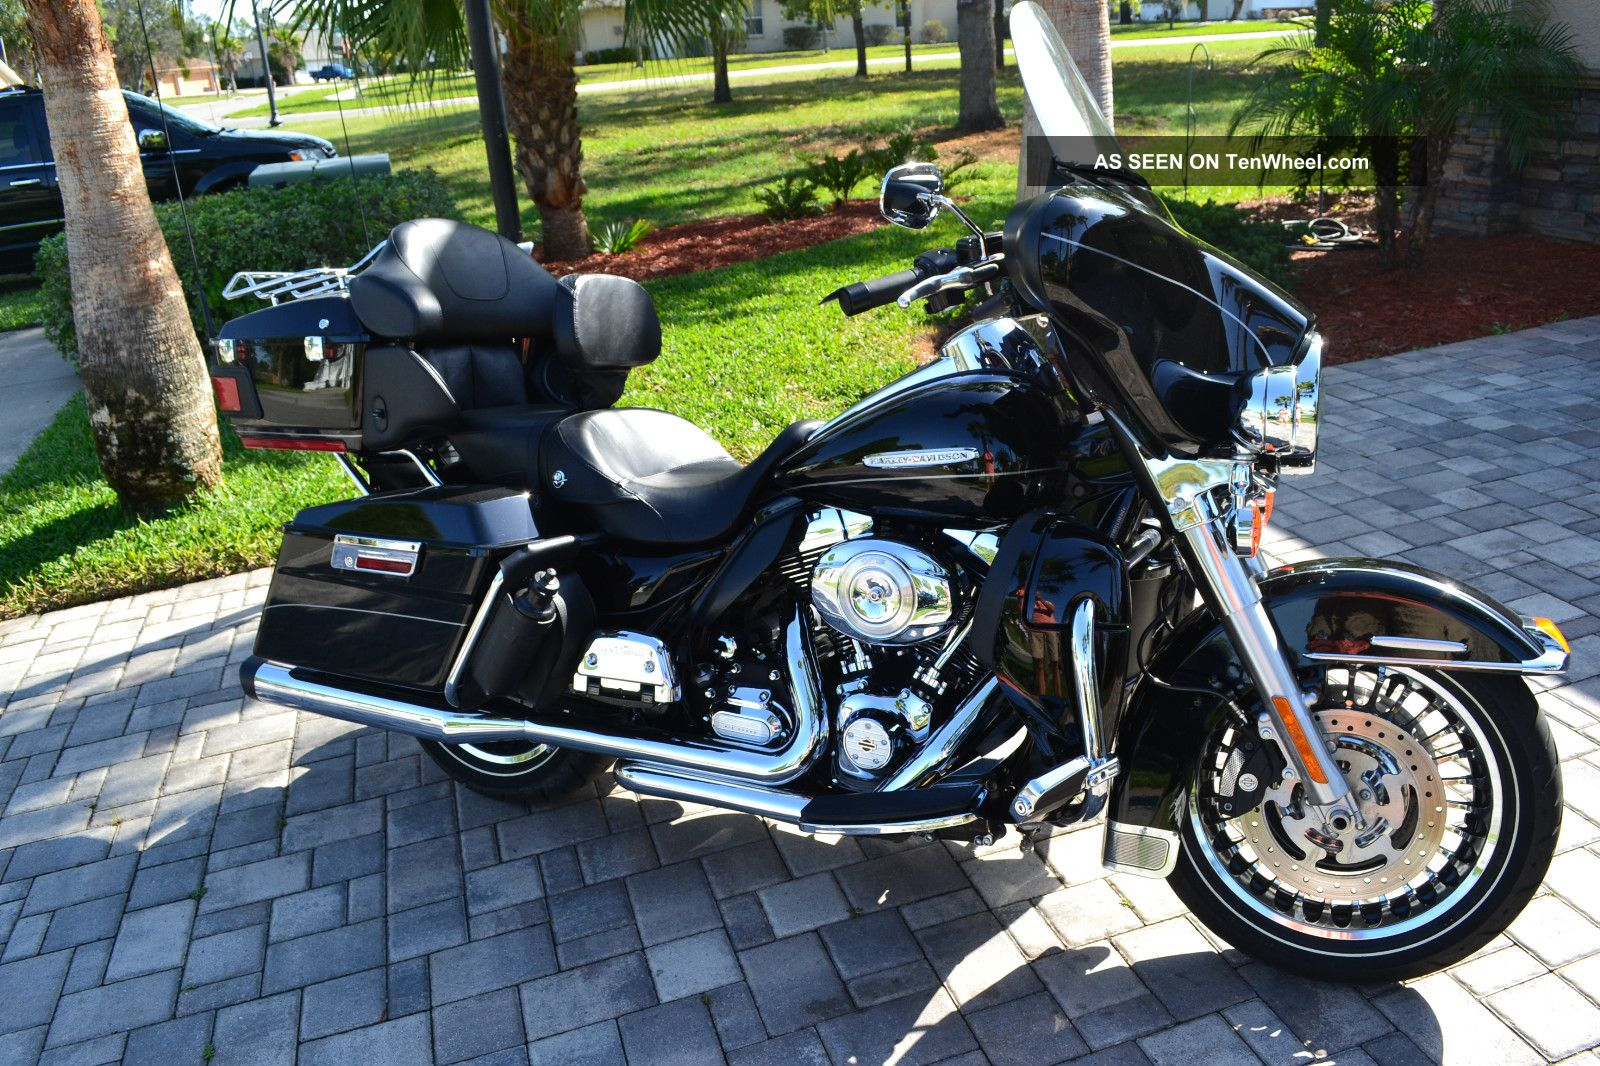 2011 Harley Davidson Electra Glide Ultra Classic Limited